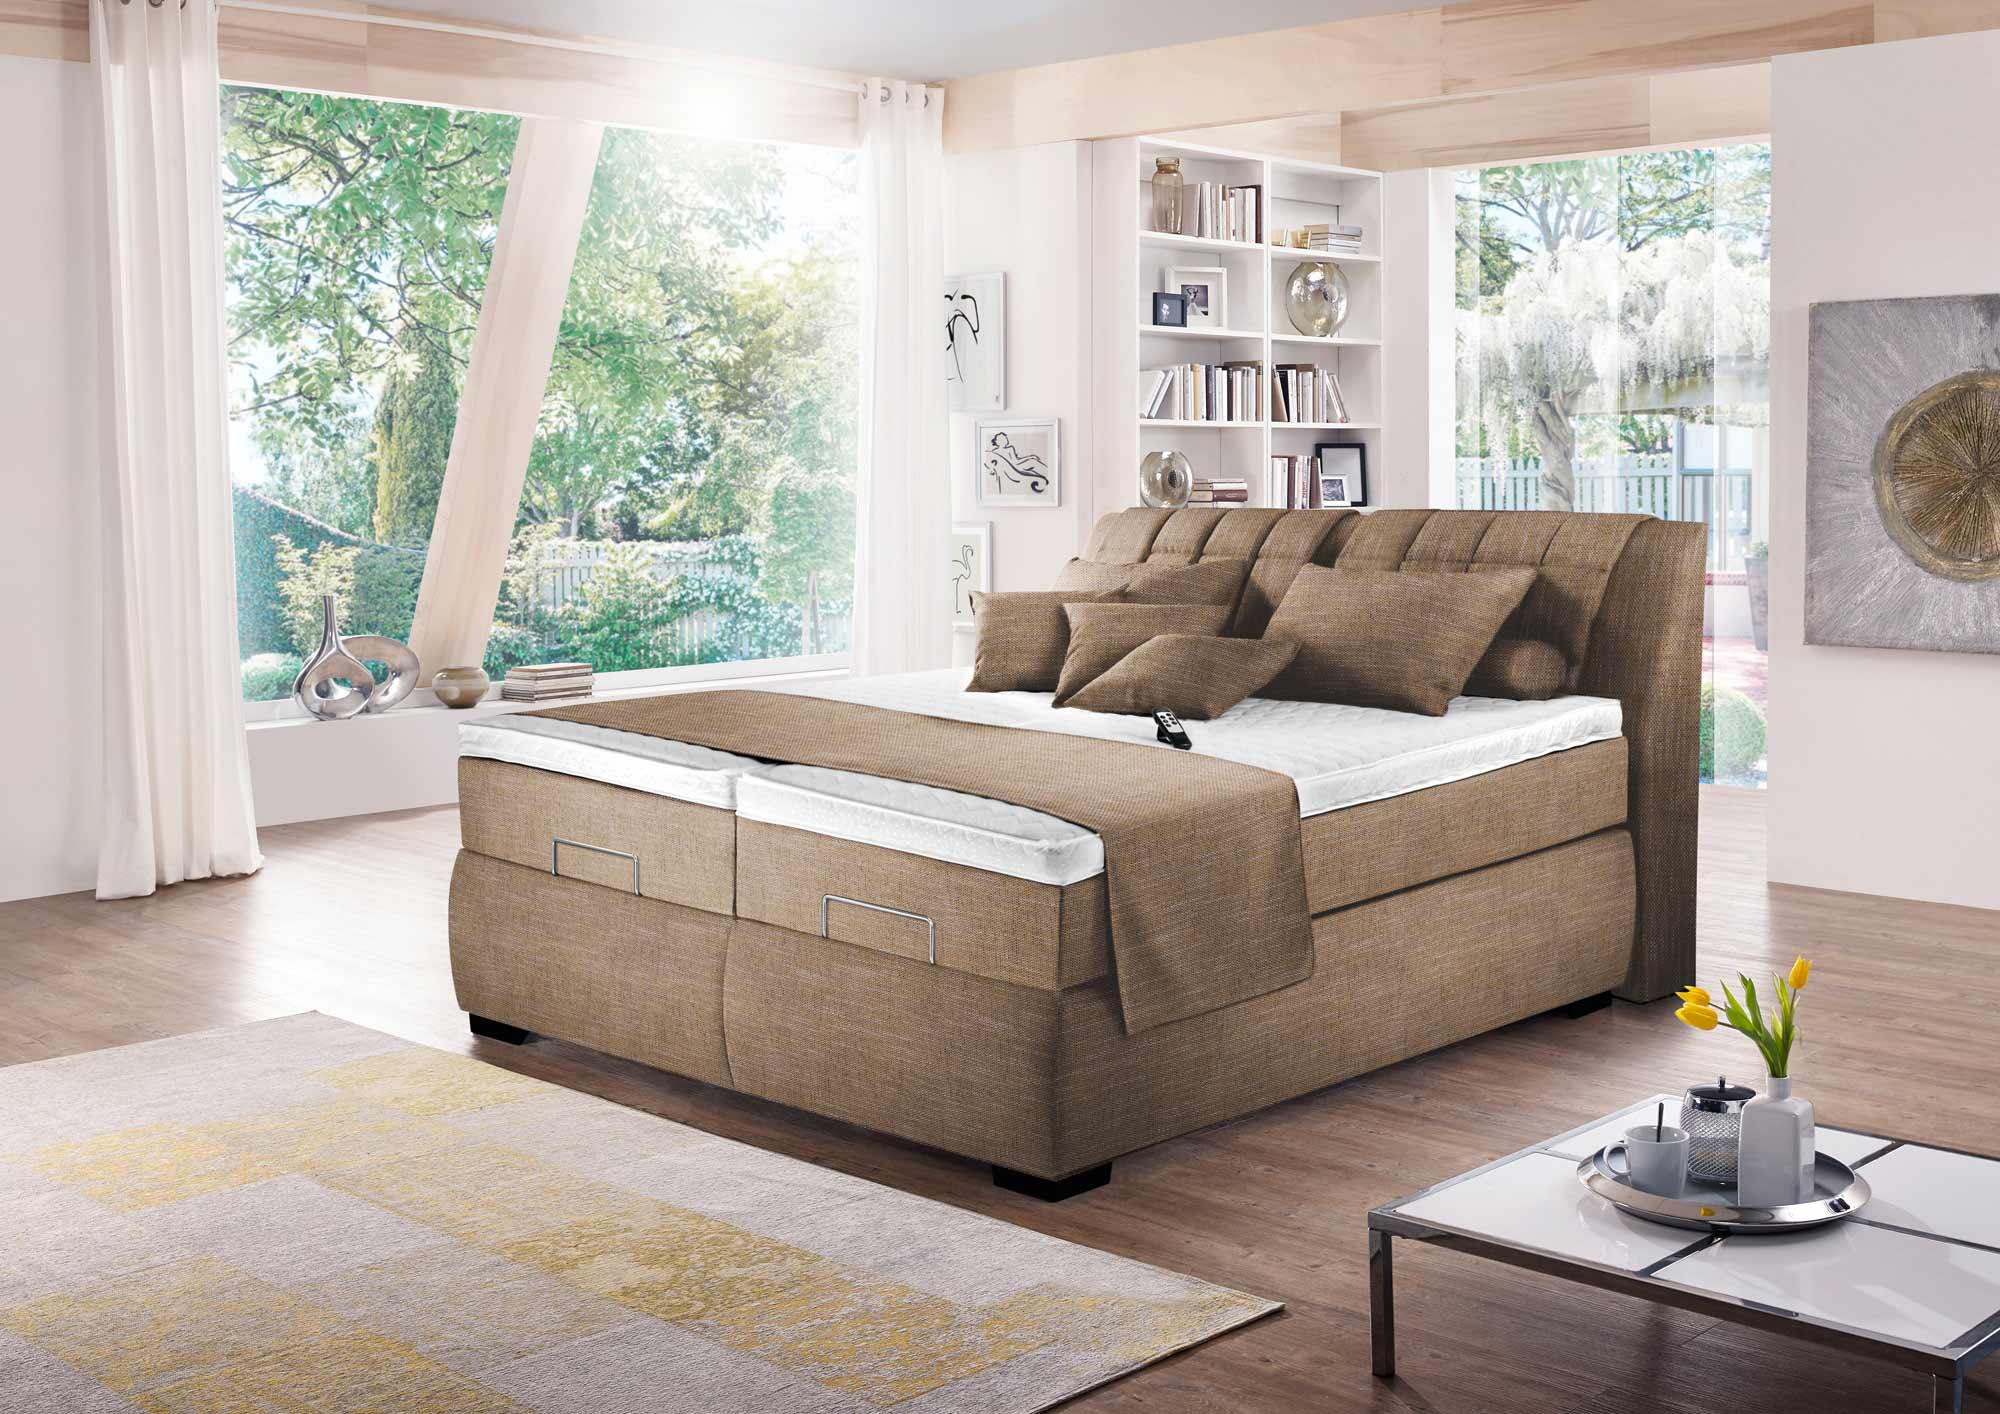 boxspringbett in beige braun elektrisch kaufen bei lifestyle4living m belvertrieb gmbh co kg. Black Bedroom Furniture Sets. Home Design Ideas